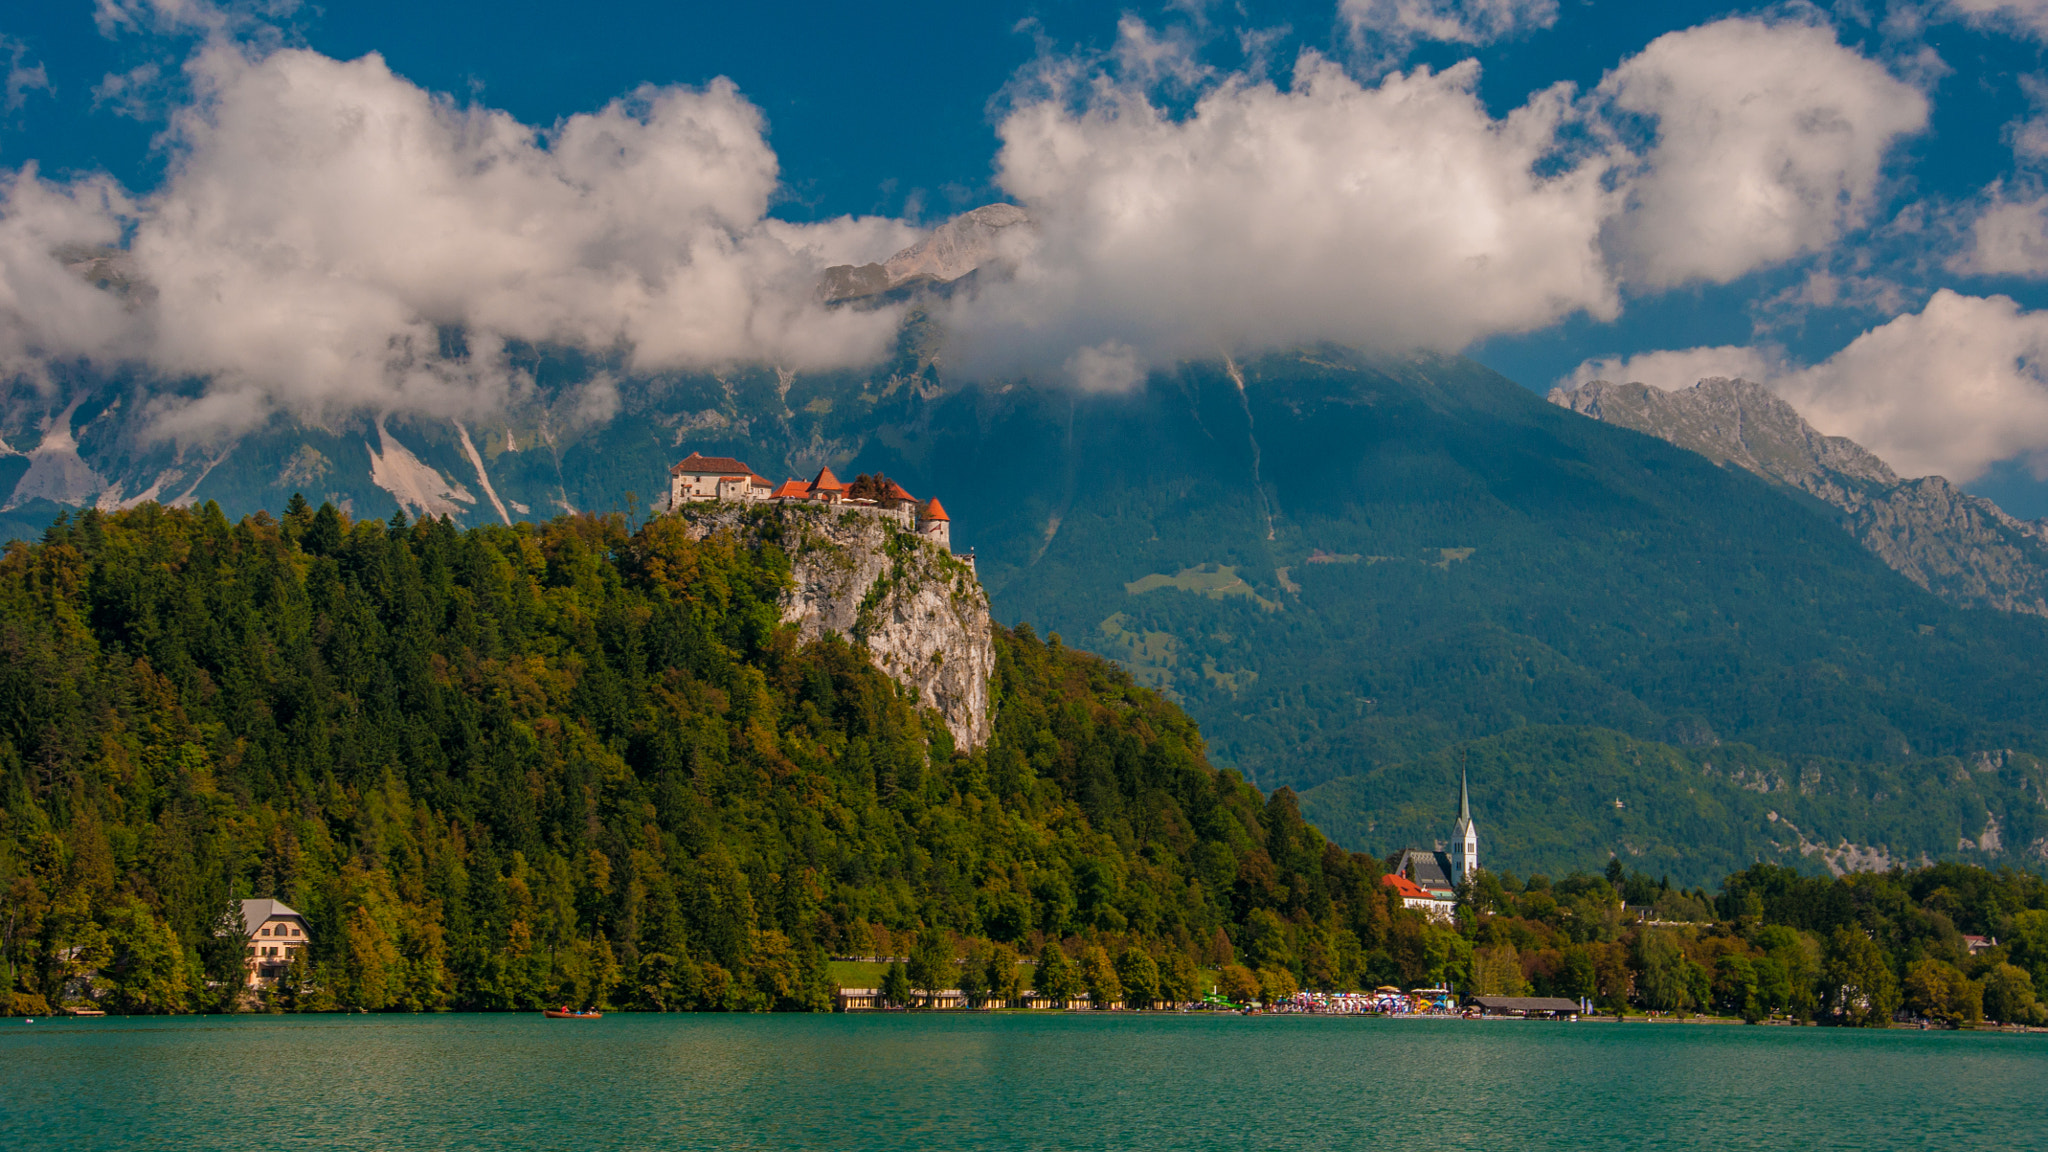 Photograph lake & castle (07) - Bled by Vlado Ferencic on 500px